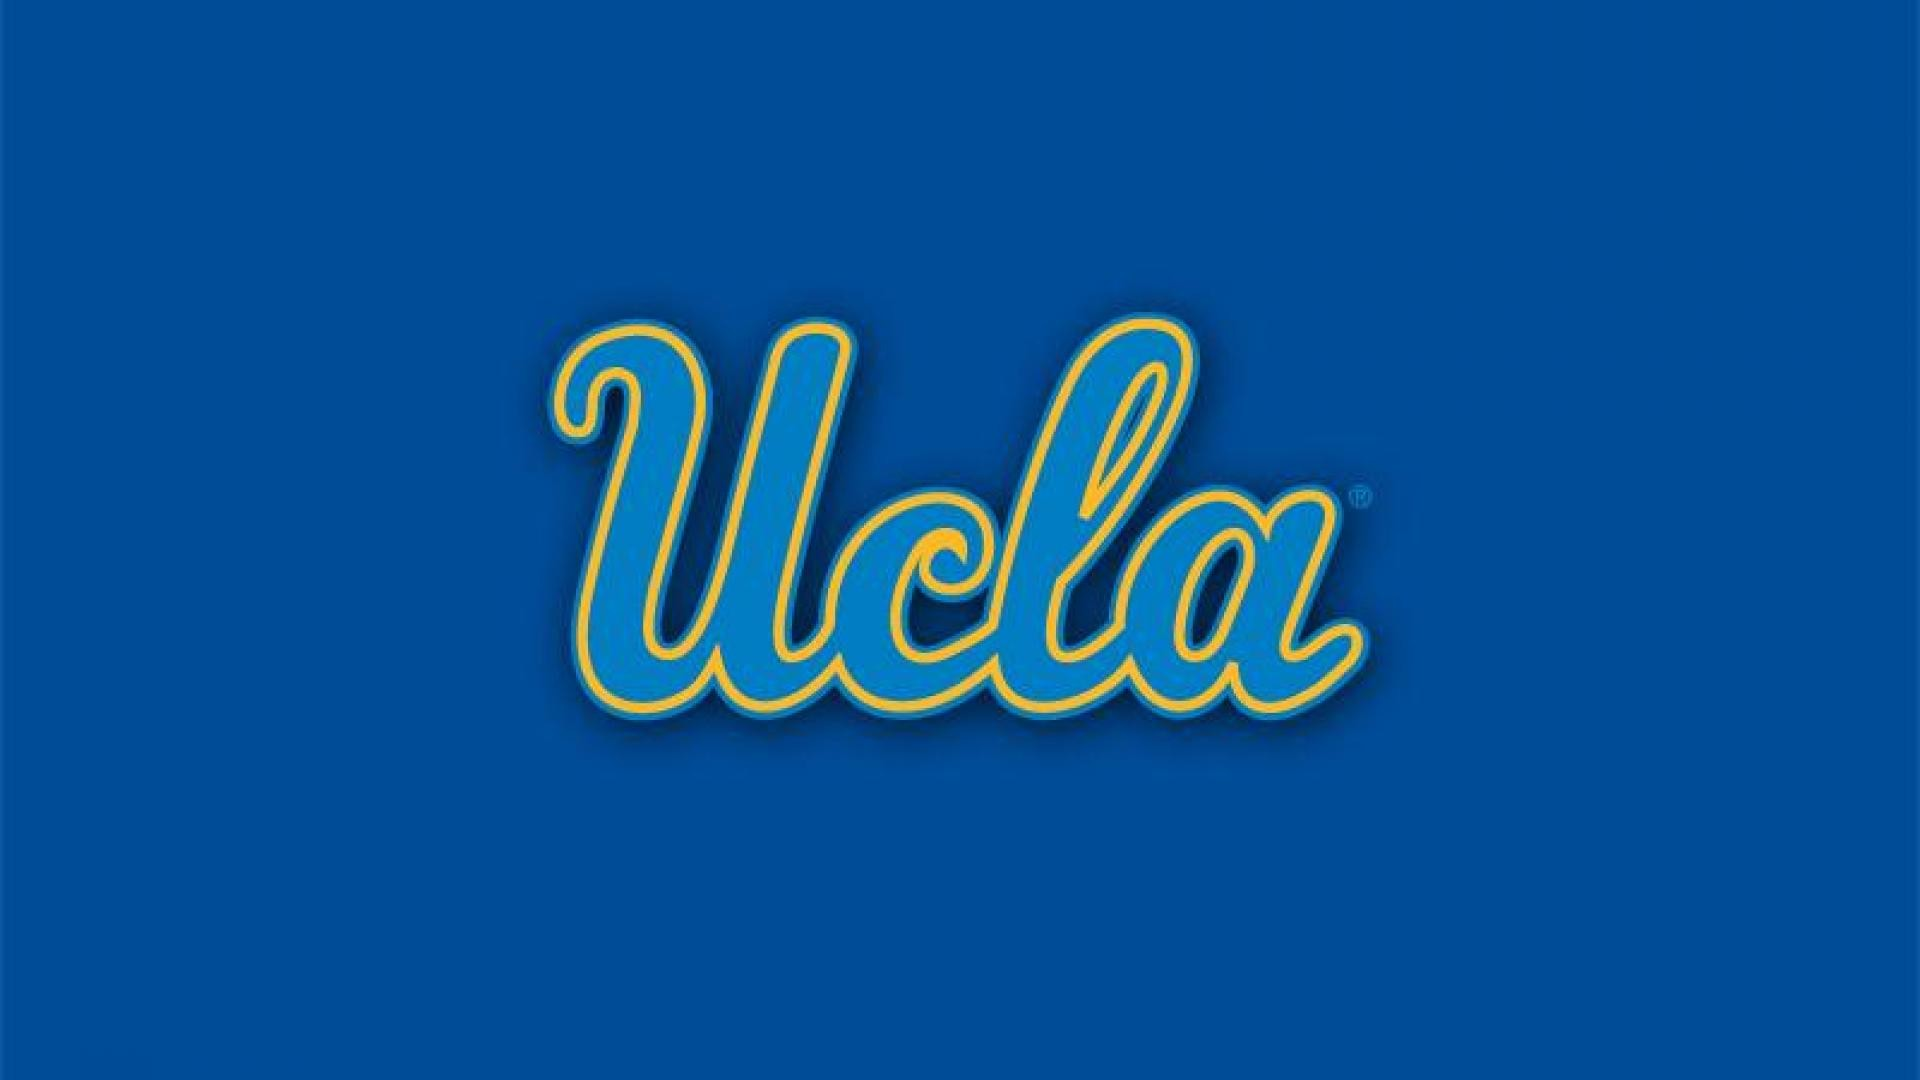 Ucla – (#68782) – High Quality and Resolution Wallpapers on hqWallbase .